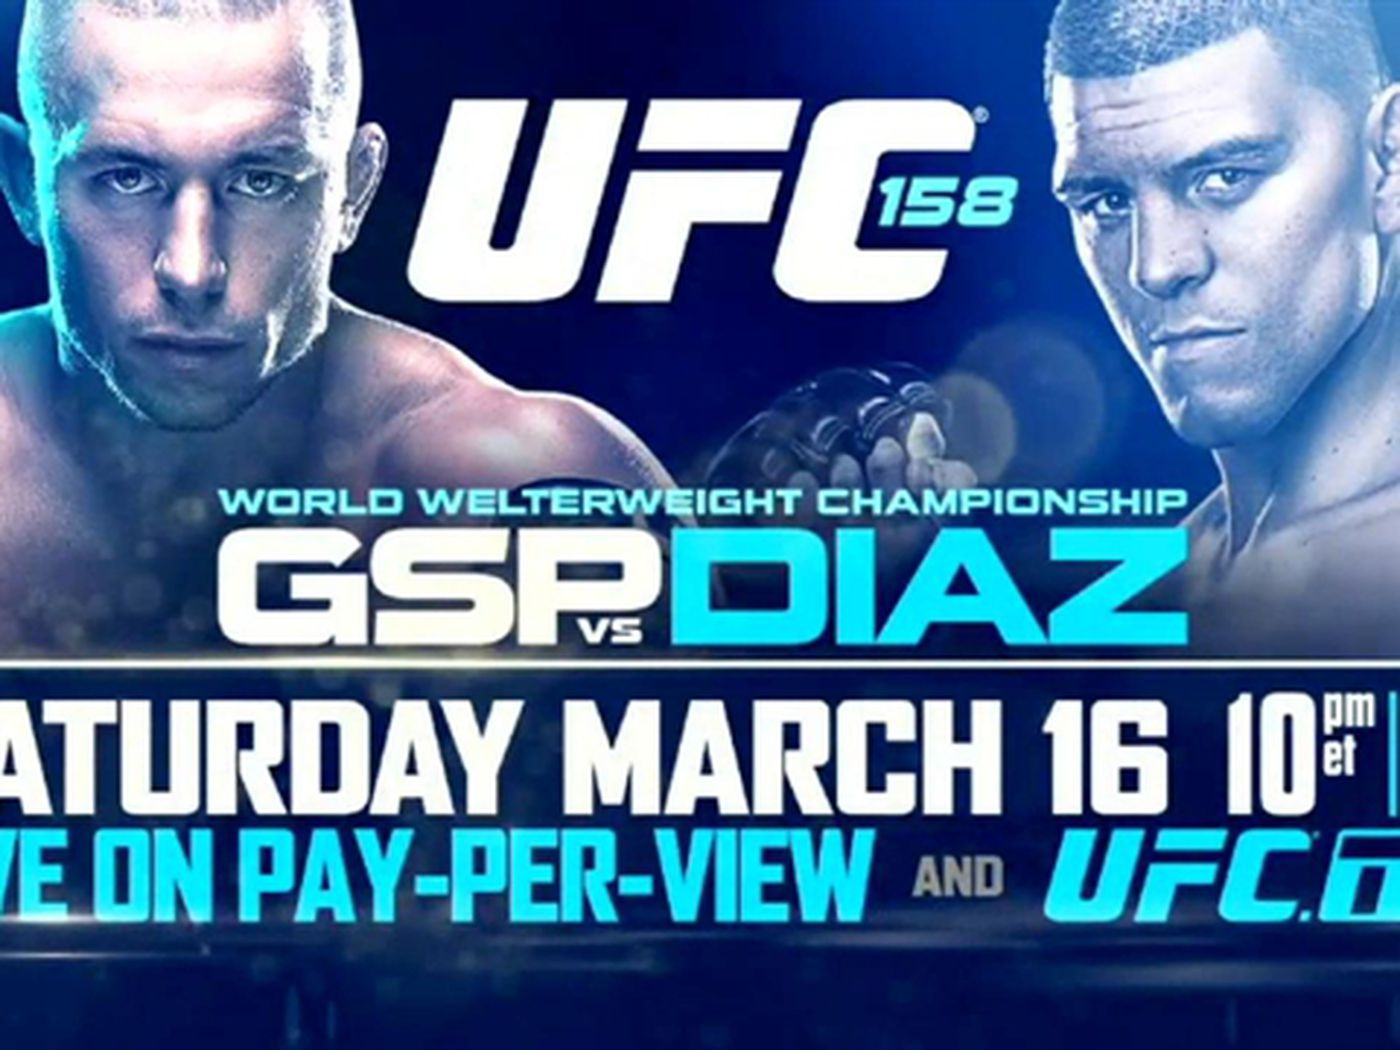 Ufc 158 fight card results betting odds and tickets guia como minar bitcoins for dummies